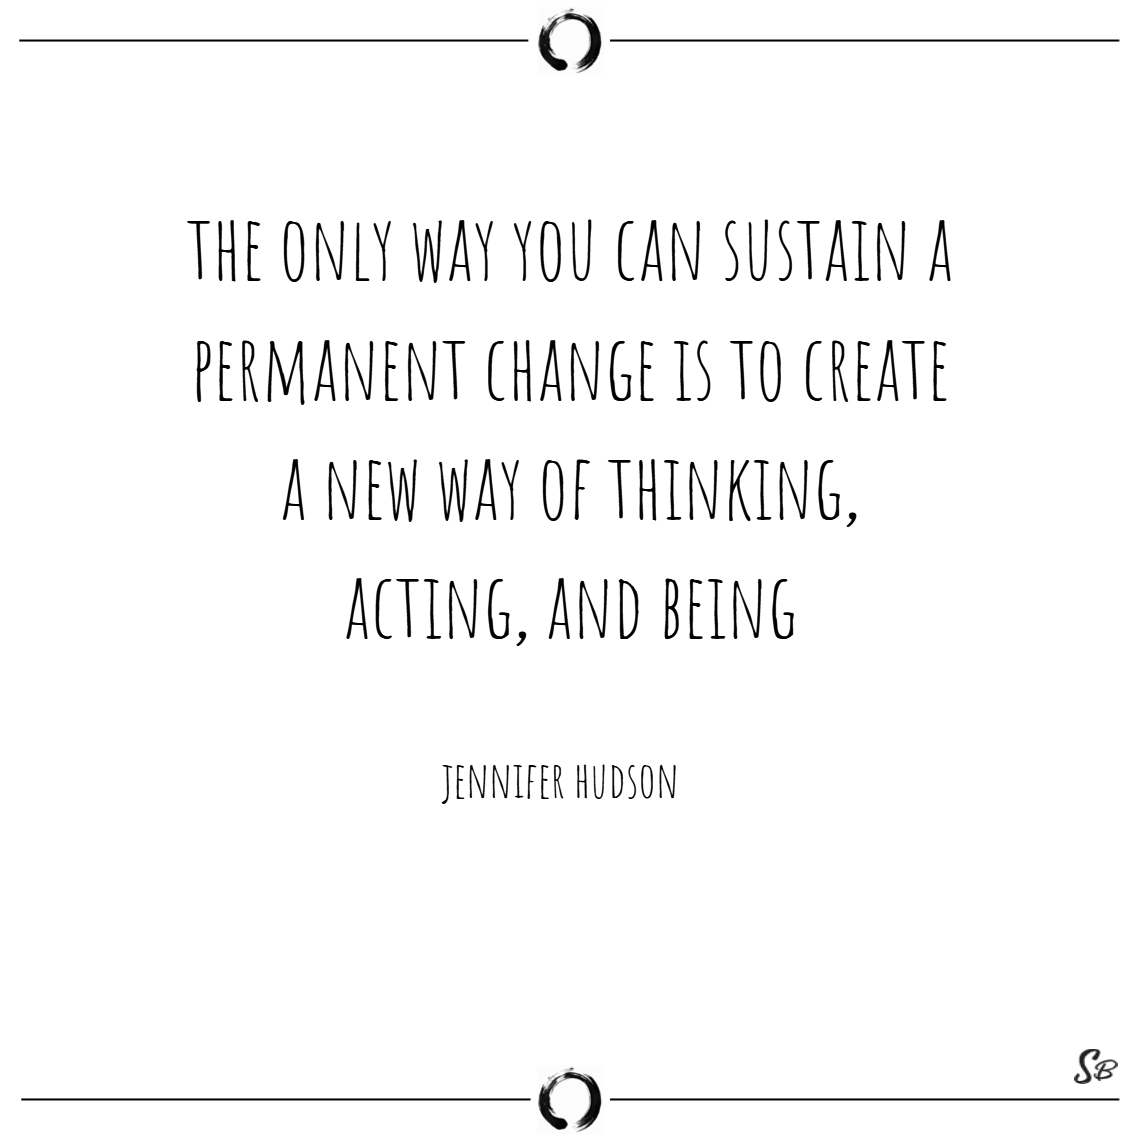 The only way you can sustain a permanent change is to create a new way of thinking, acting, and being. – jennifer hudson